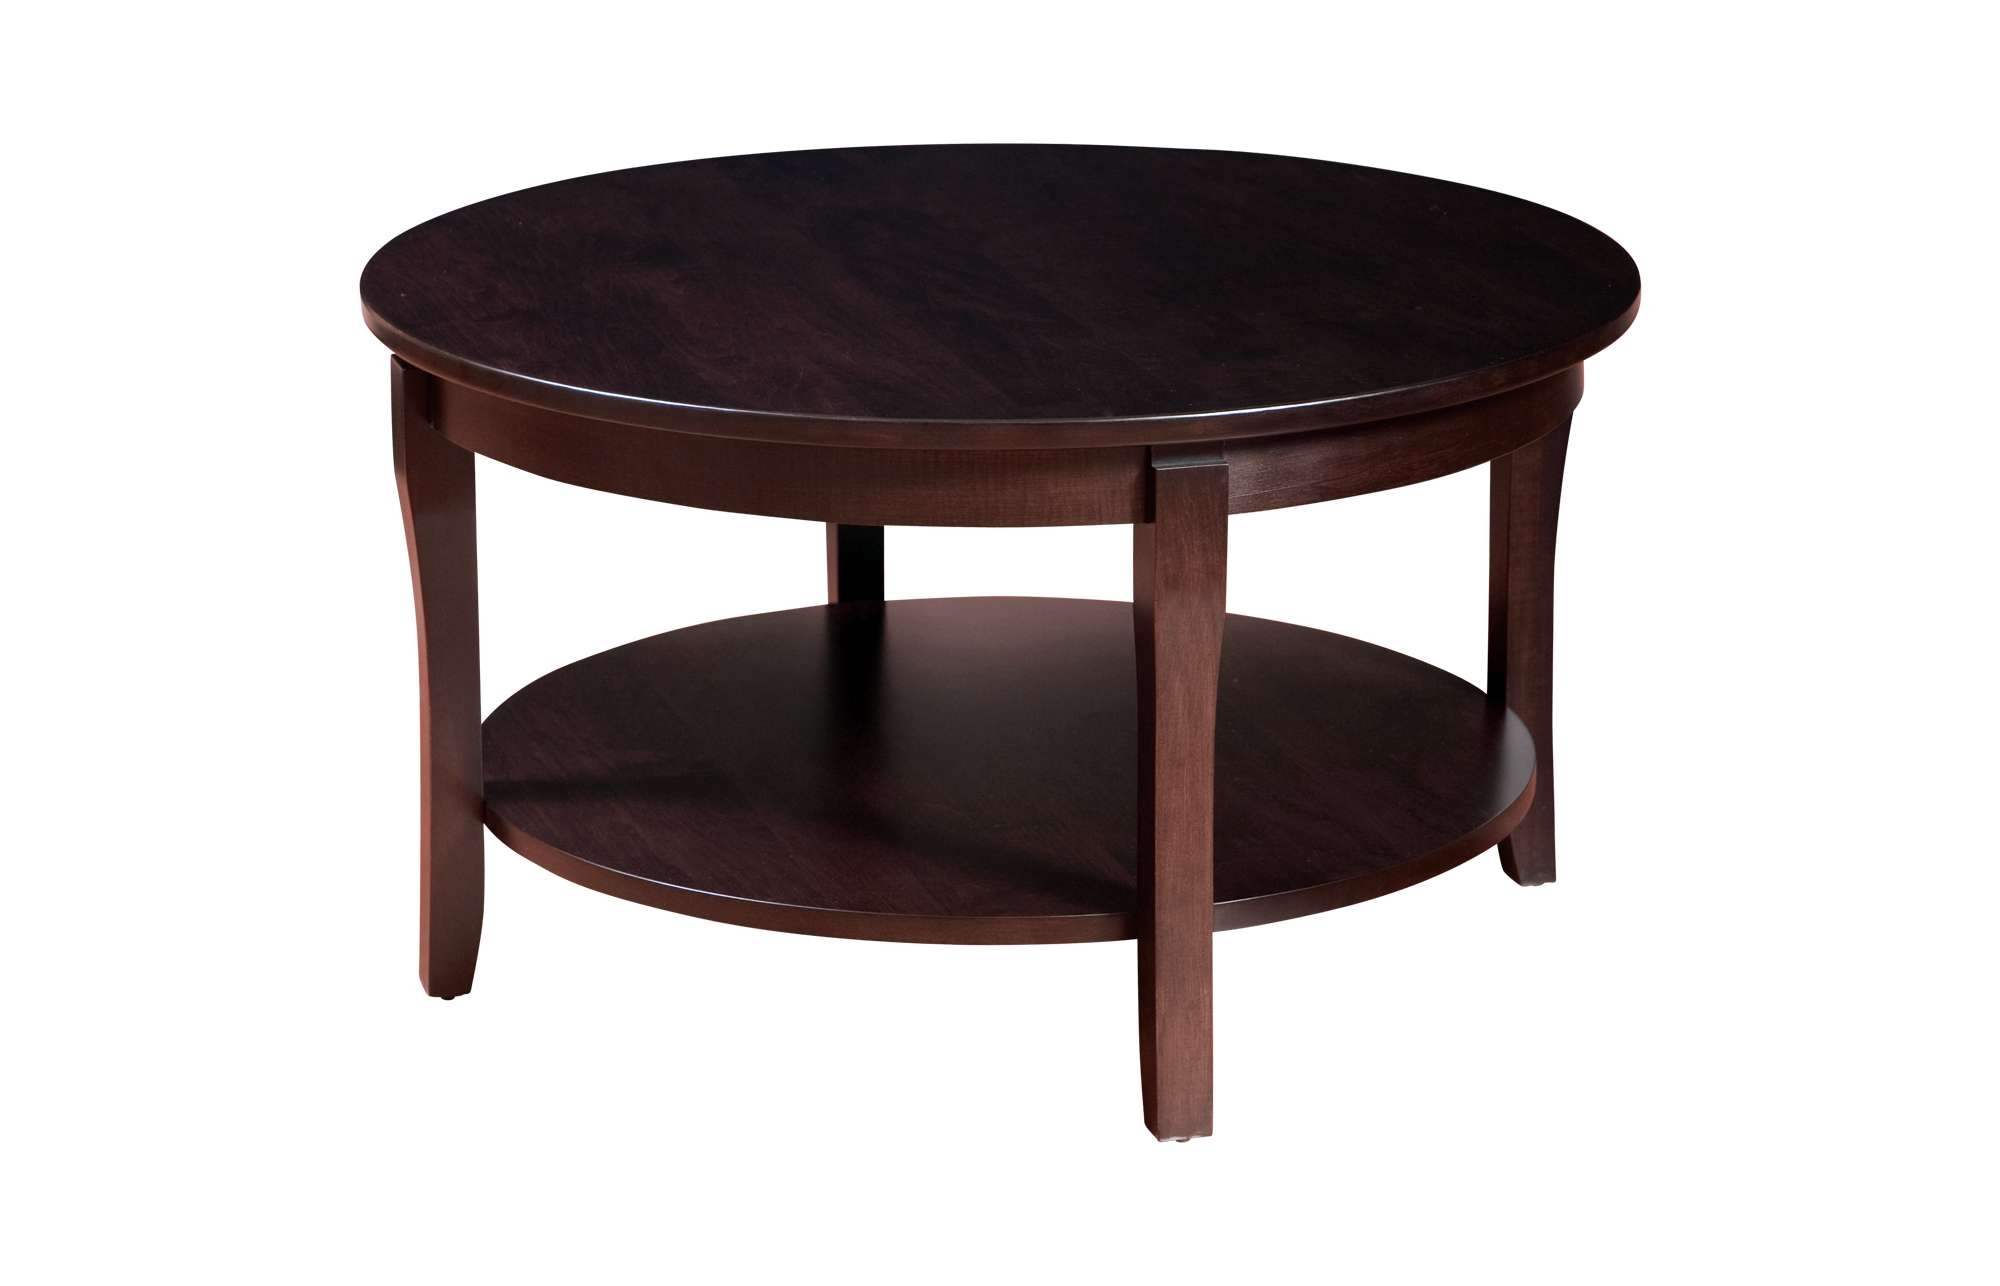 Coffee Table : Coffee Table Large Circular Half Circle Tablecircle Within Fashionable Half Circle Coffee Tables (View 3 of 20)